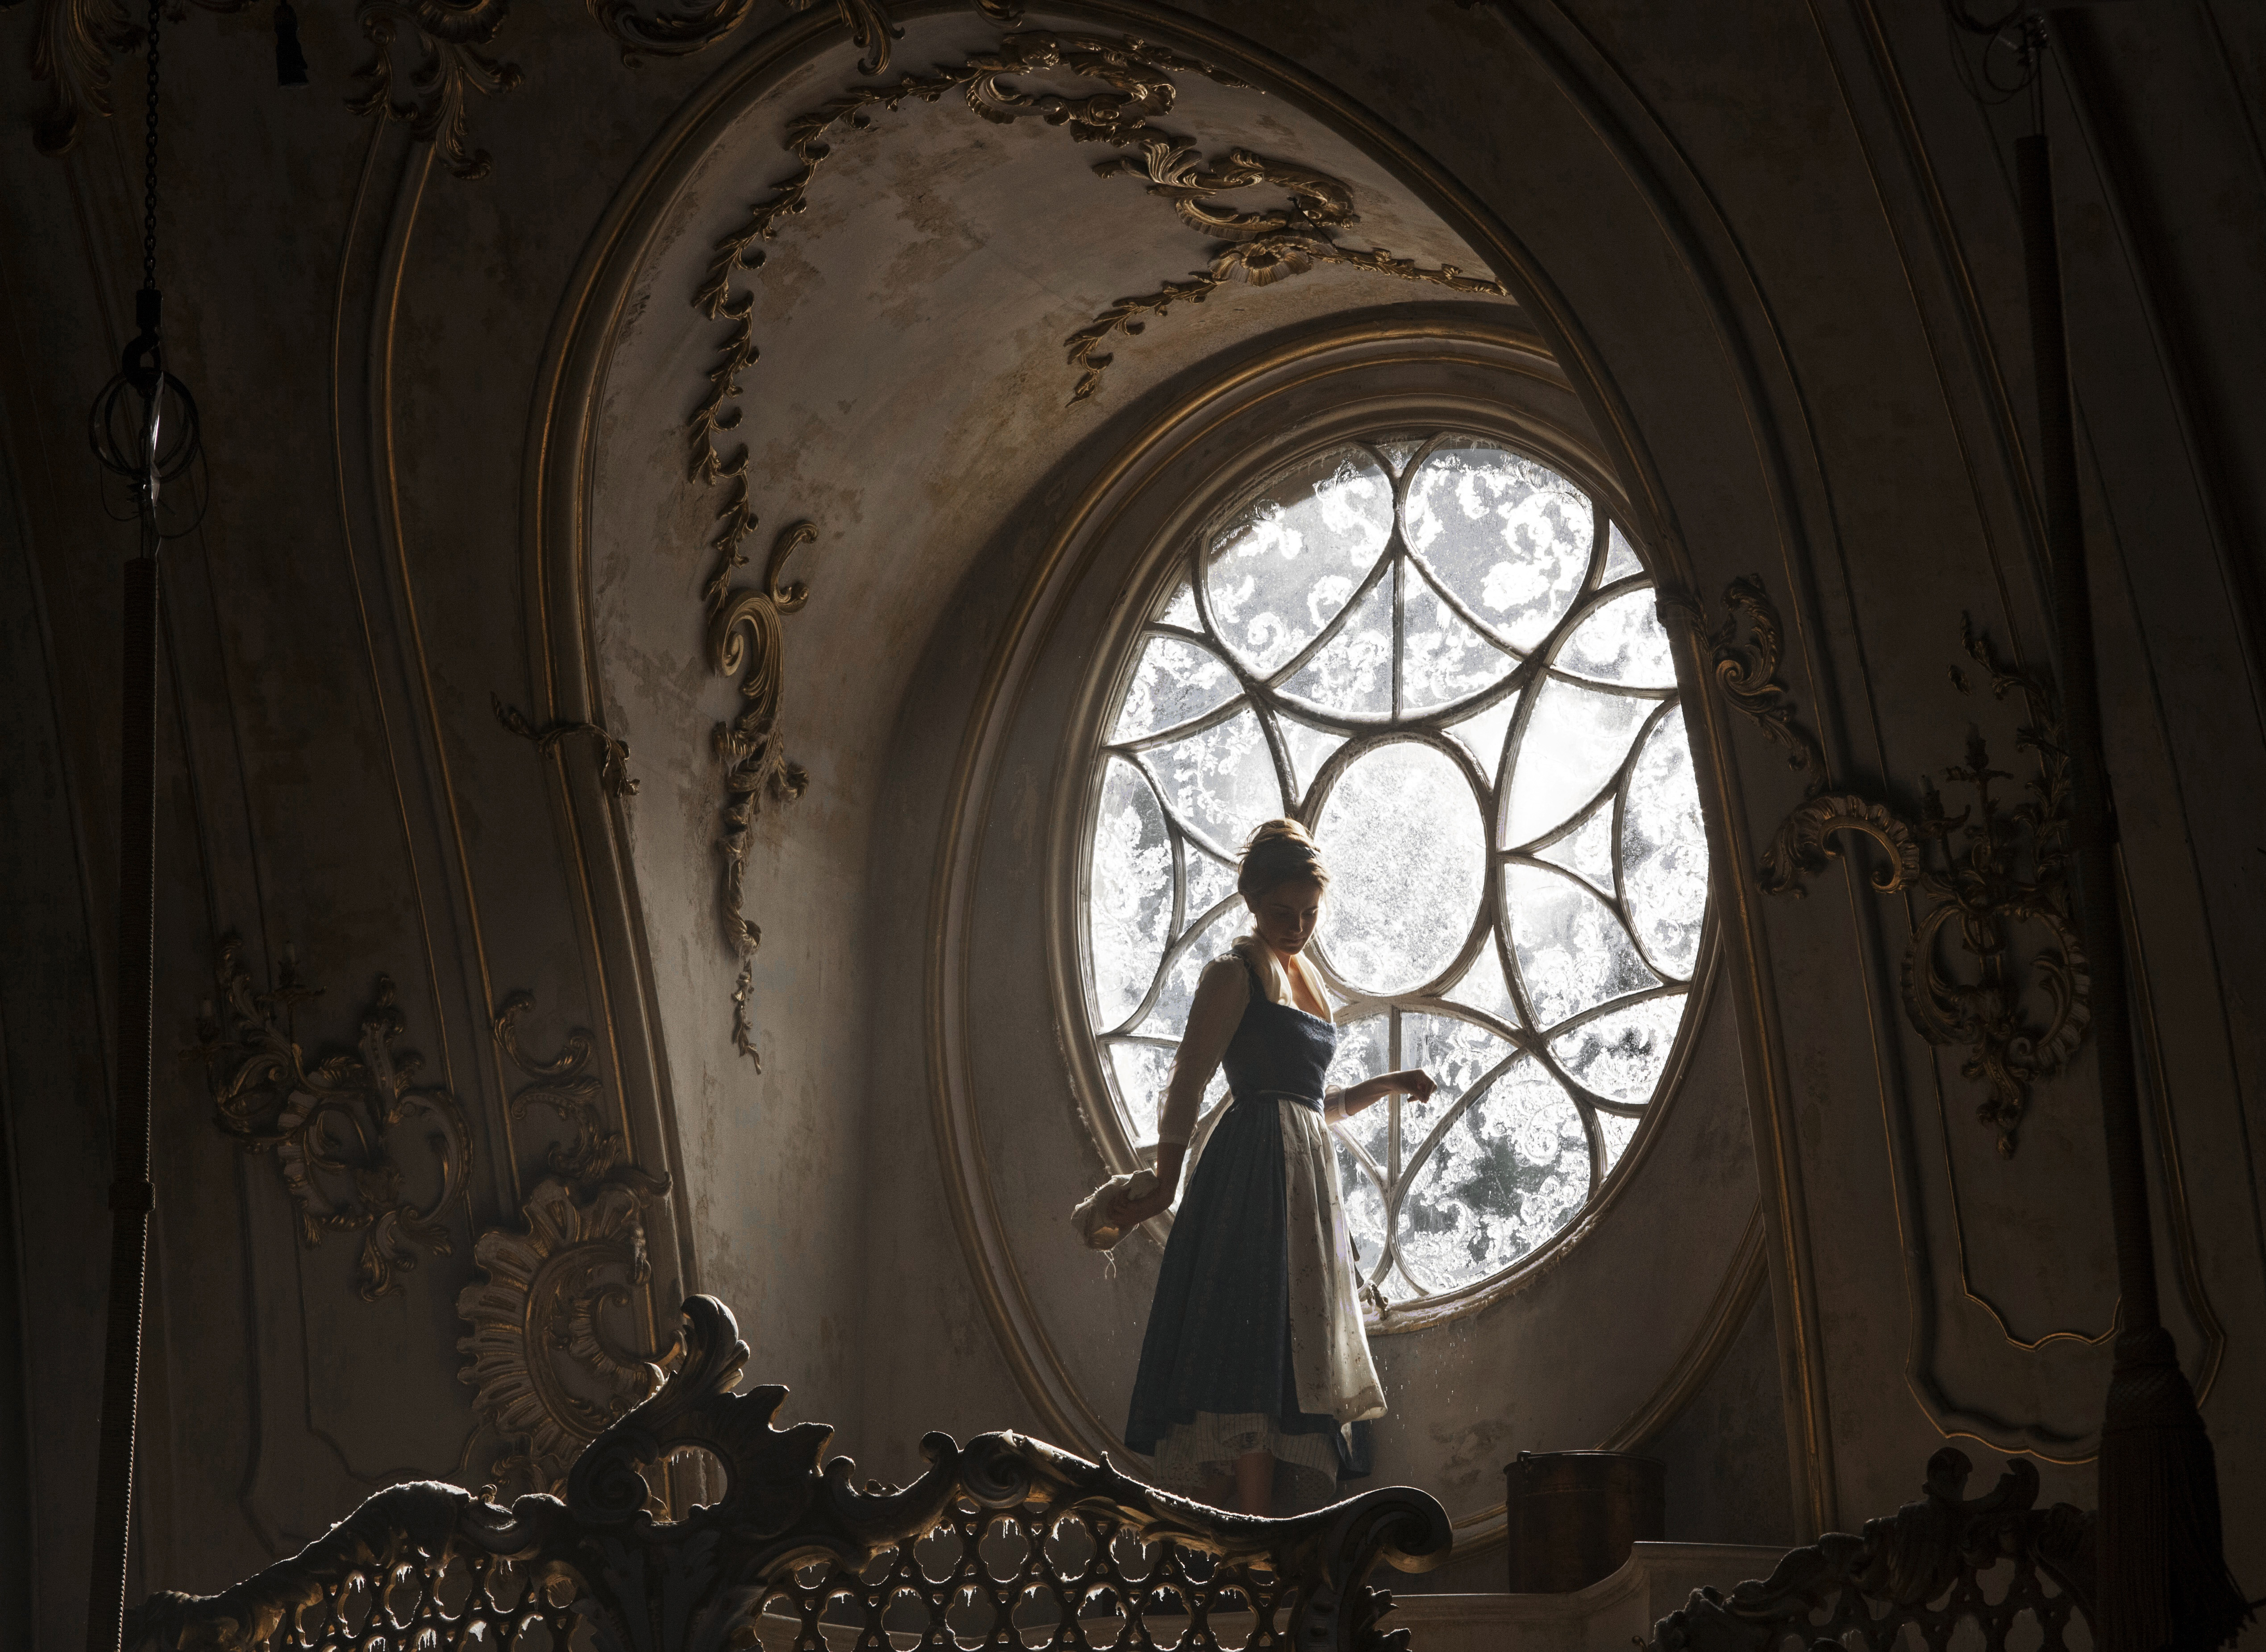 Belle (Emma Watson) in the ballroom of the Beast's castle in Disney's BEAUTY AND THE BEAST, a live-action adaptation of the studio's animated classic directed by Bill Condon which brings the story and characters audiences know and love to life.